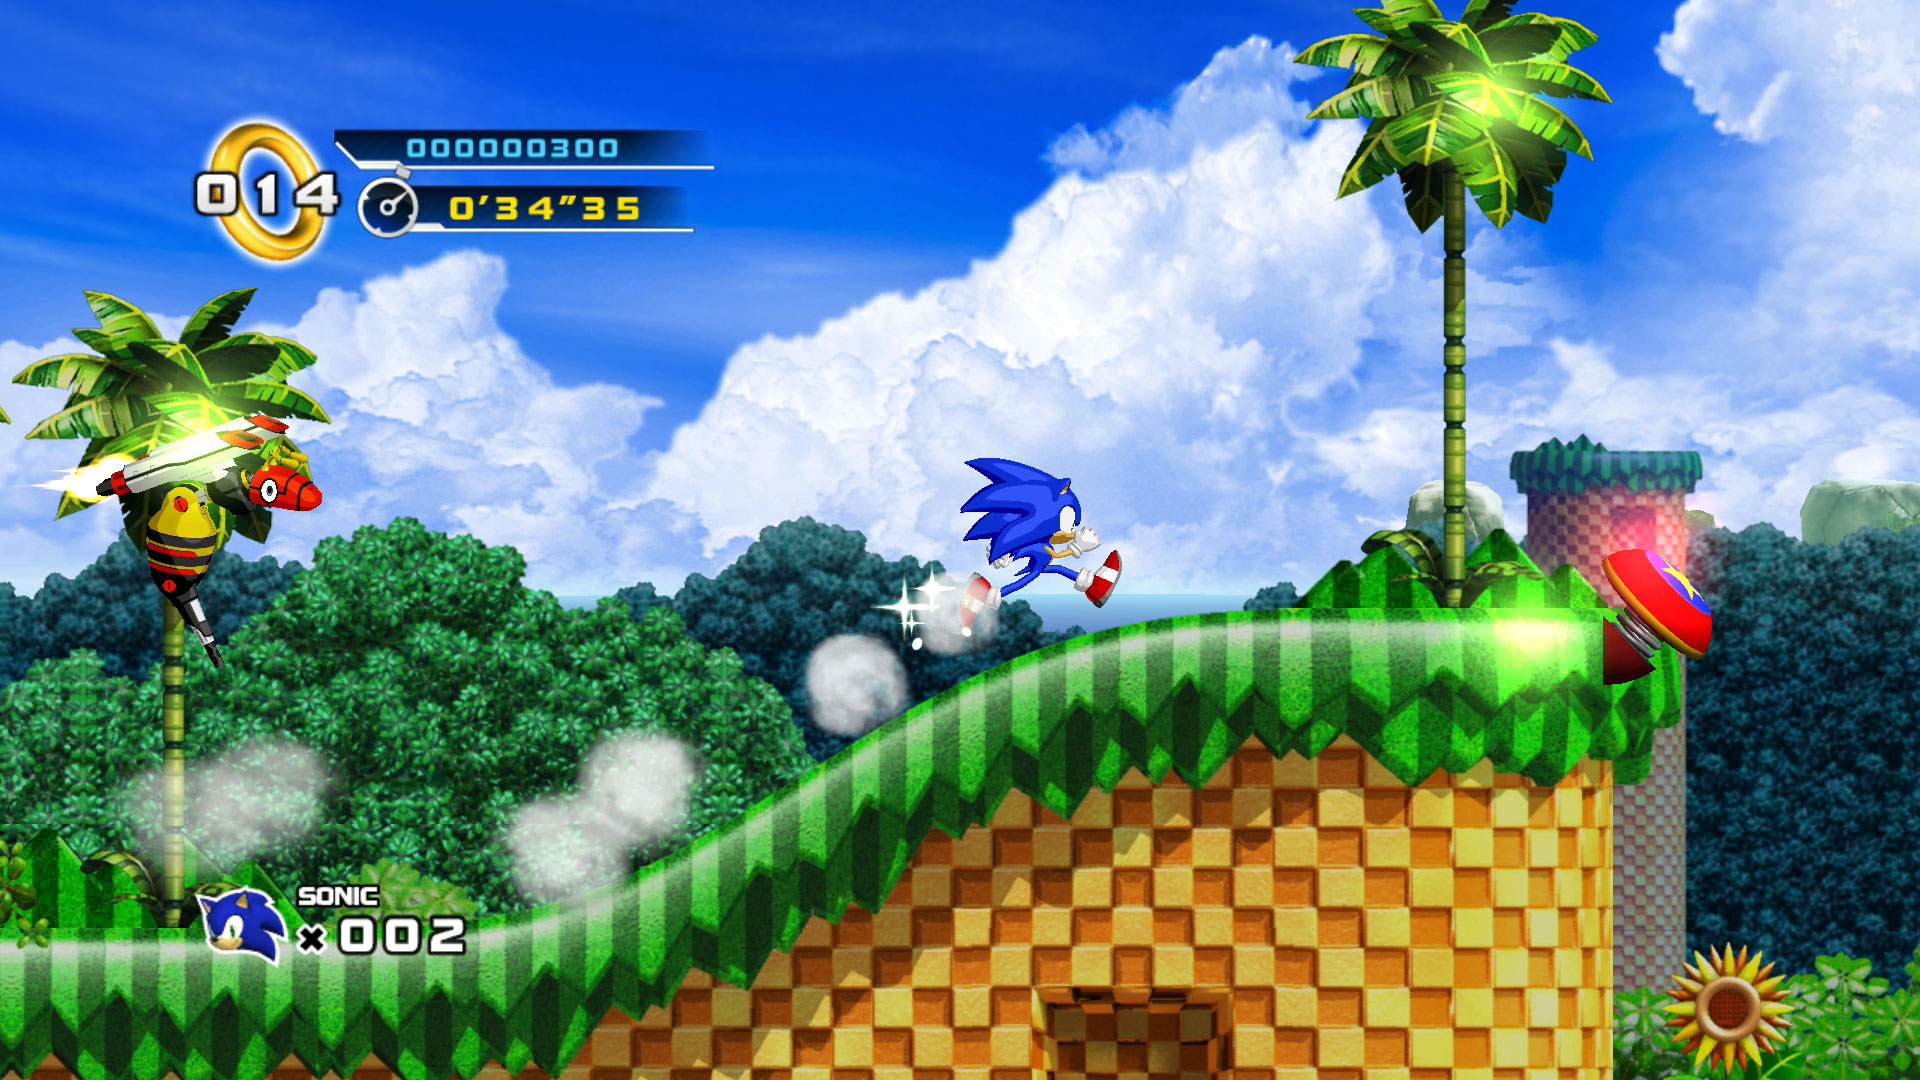 Sonic The Hedgehog 4 Episode I y II [userscloud] PC